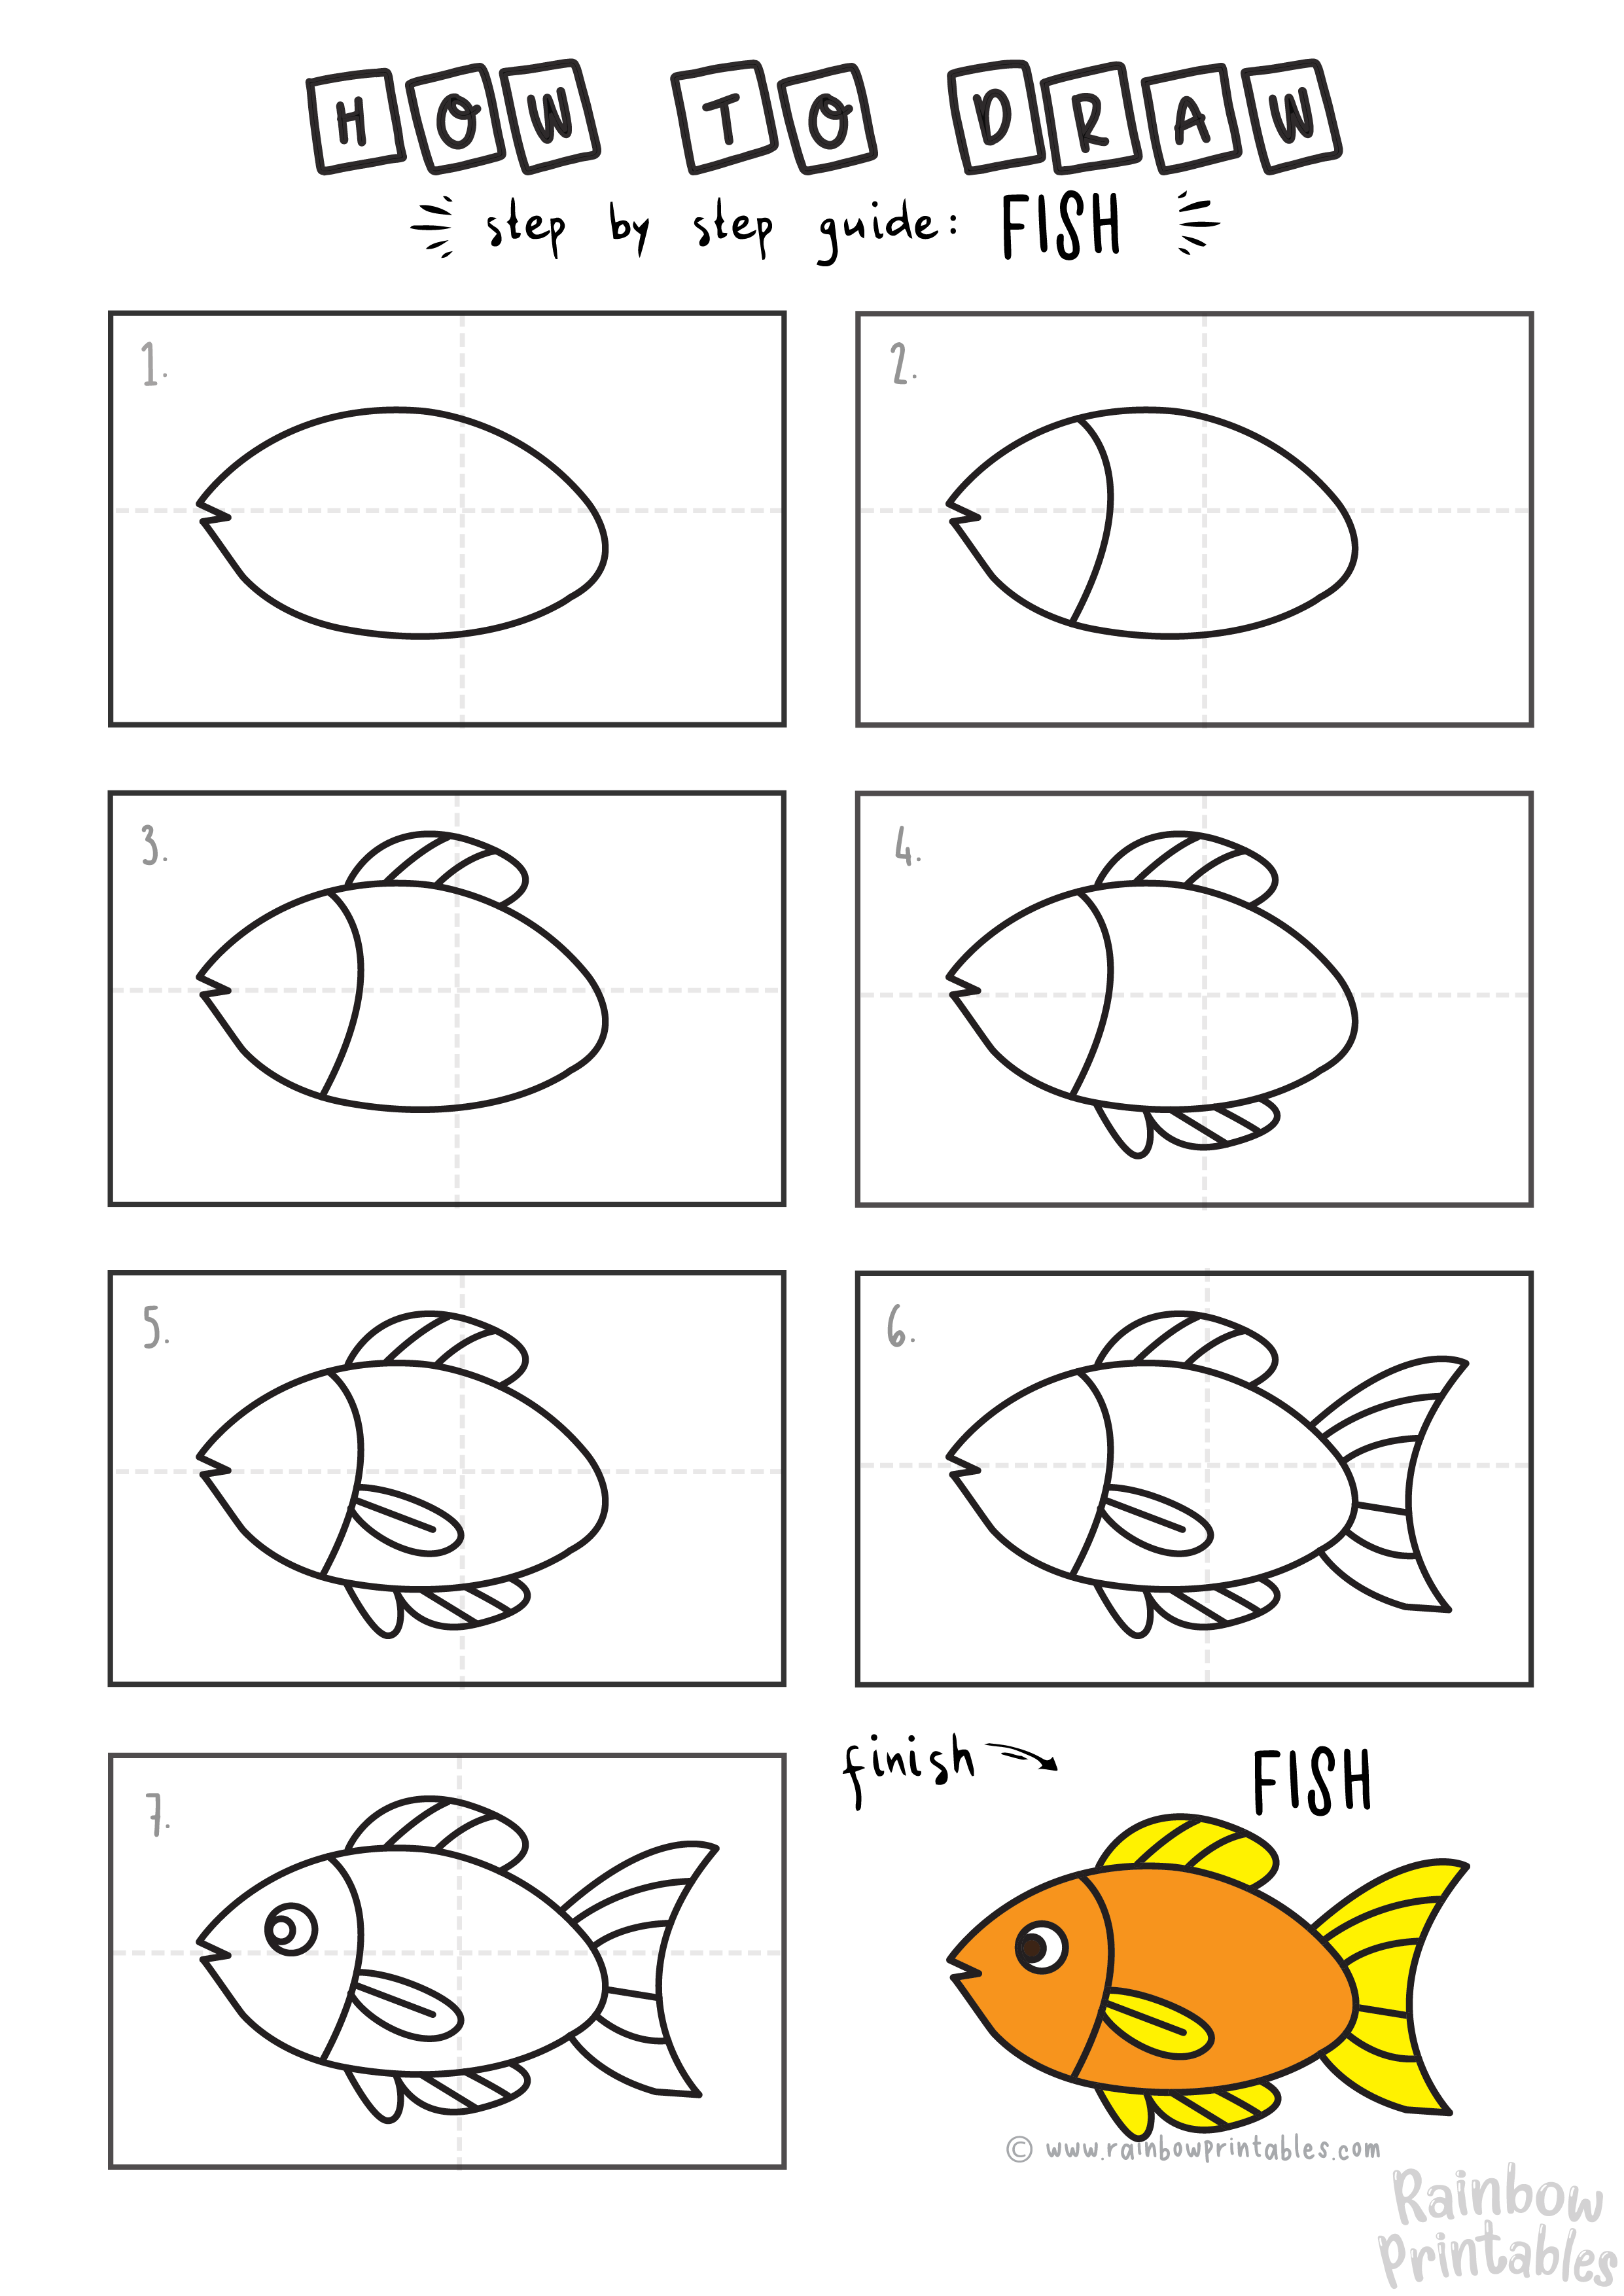 How To Draw a Fish for Kids (Step by Step Tutorial), Free Art Drawing Lesson for Children on How to Doodle a Shark